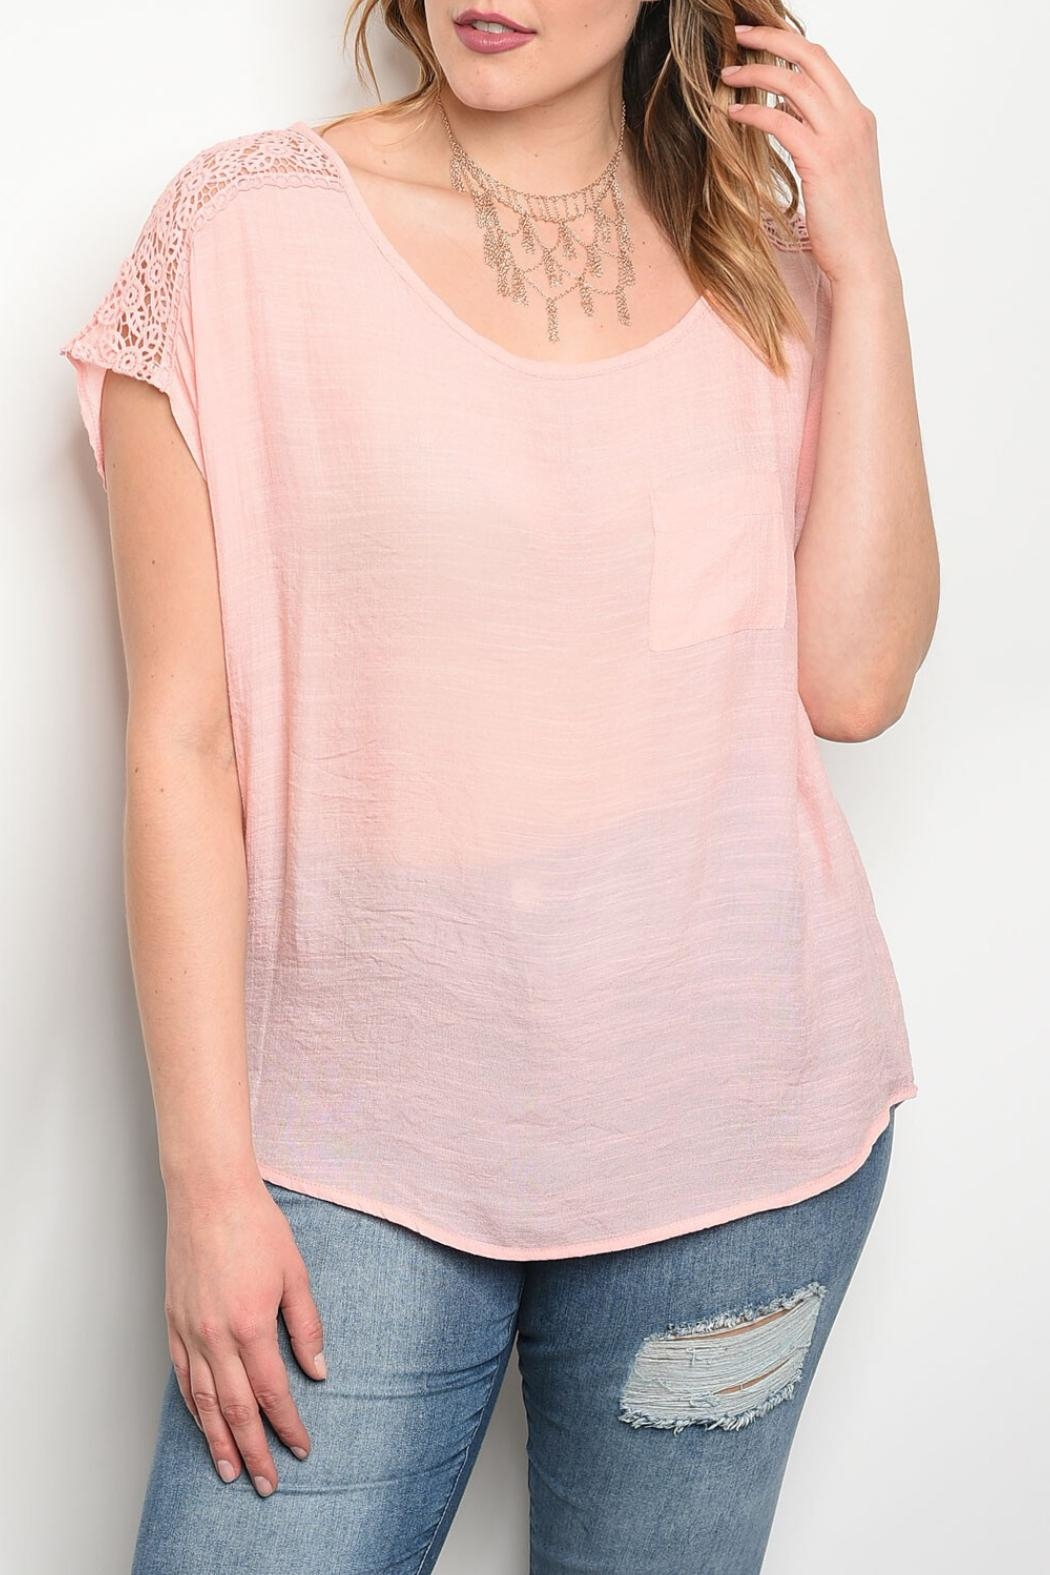 Banabee Peach Lace Top - Front Cropped Image